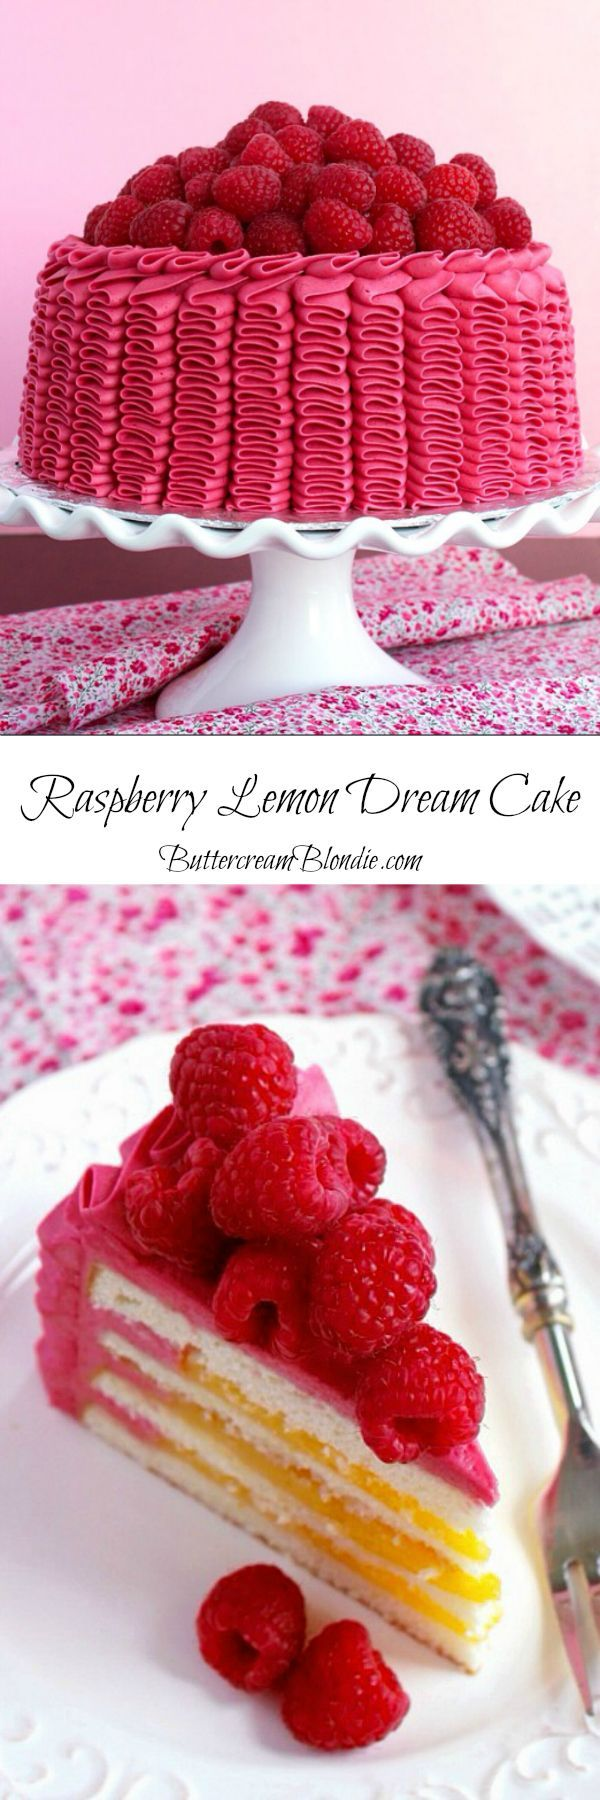 Raspberry Lemon Ruffle Cake - light layers of #cake filled with bright lemon curd, and covered in the best raspberry buttercream! | http://ButtercreamBlondie.com